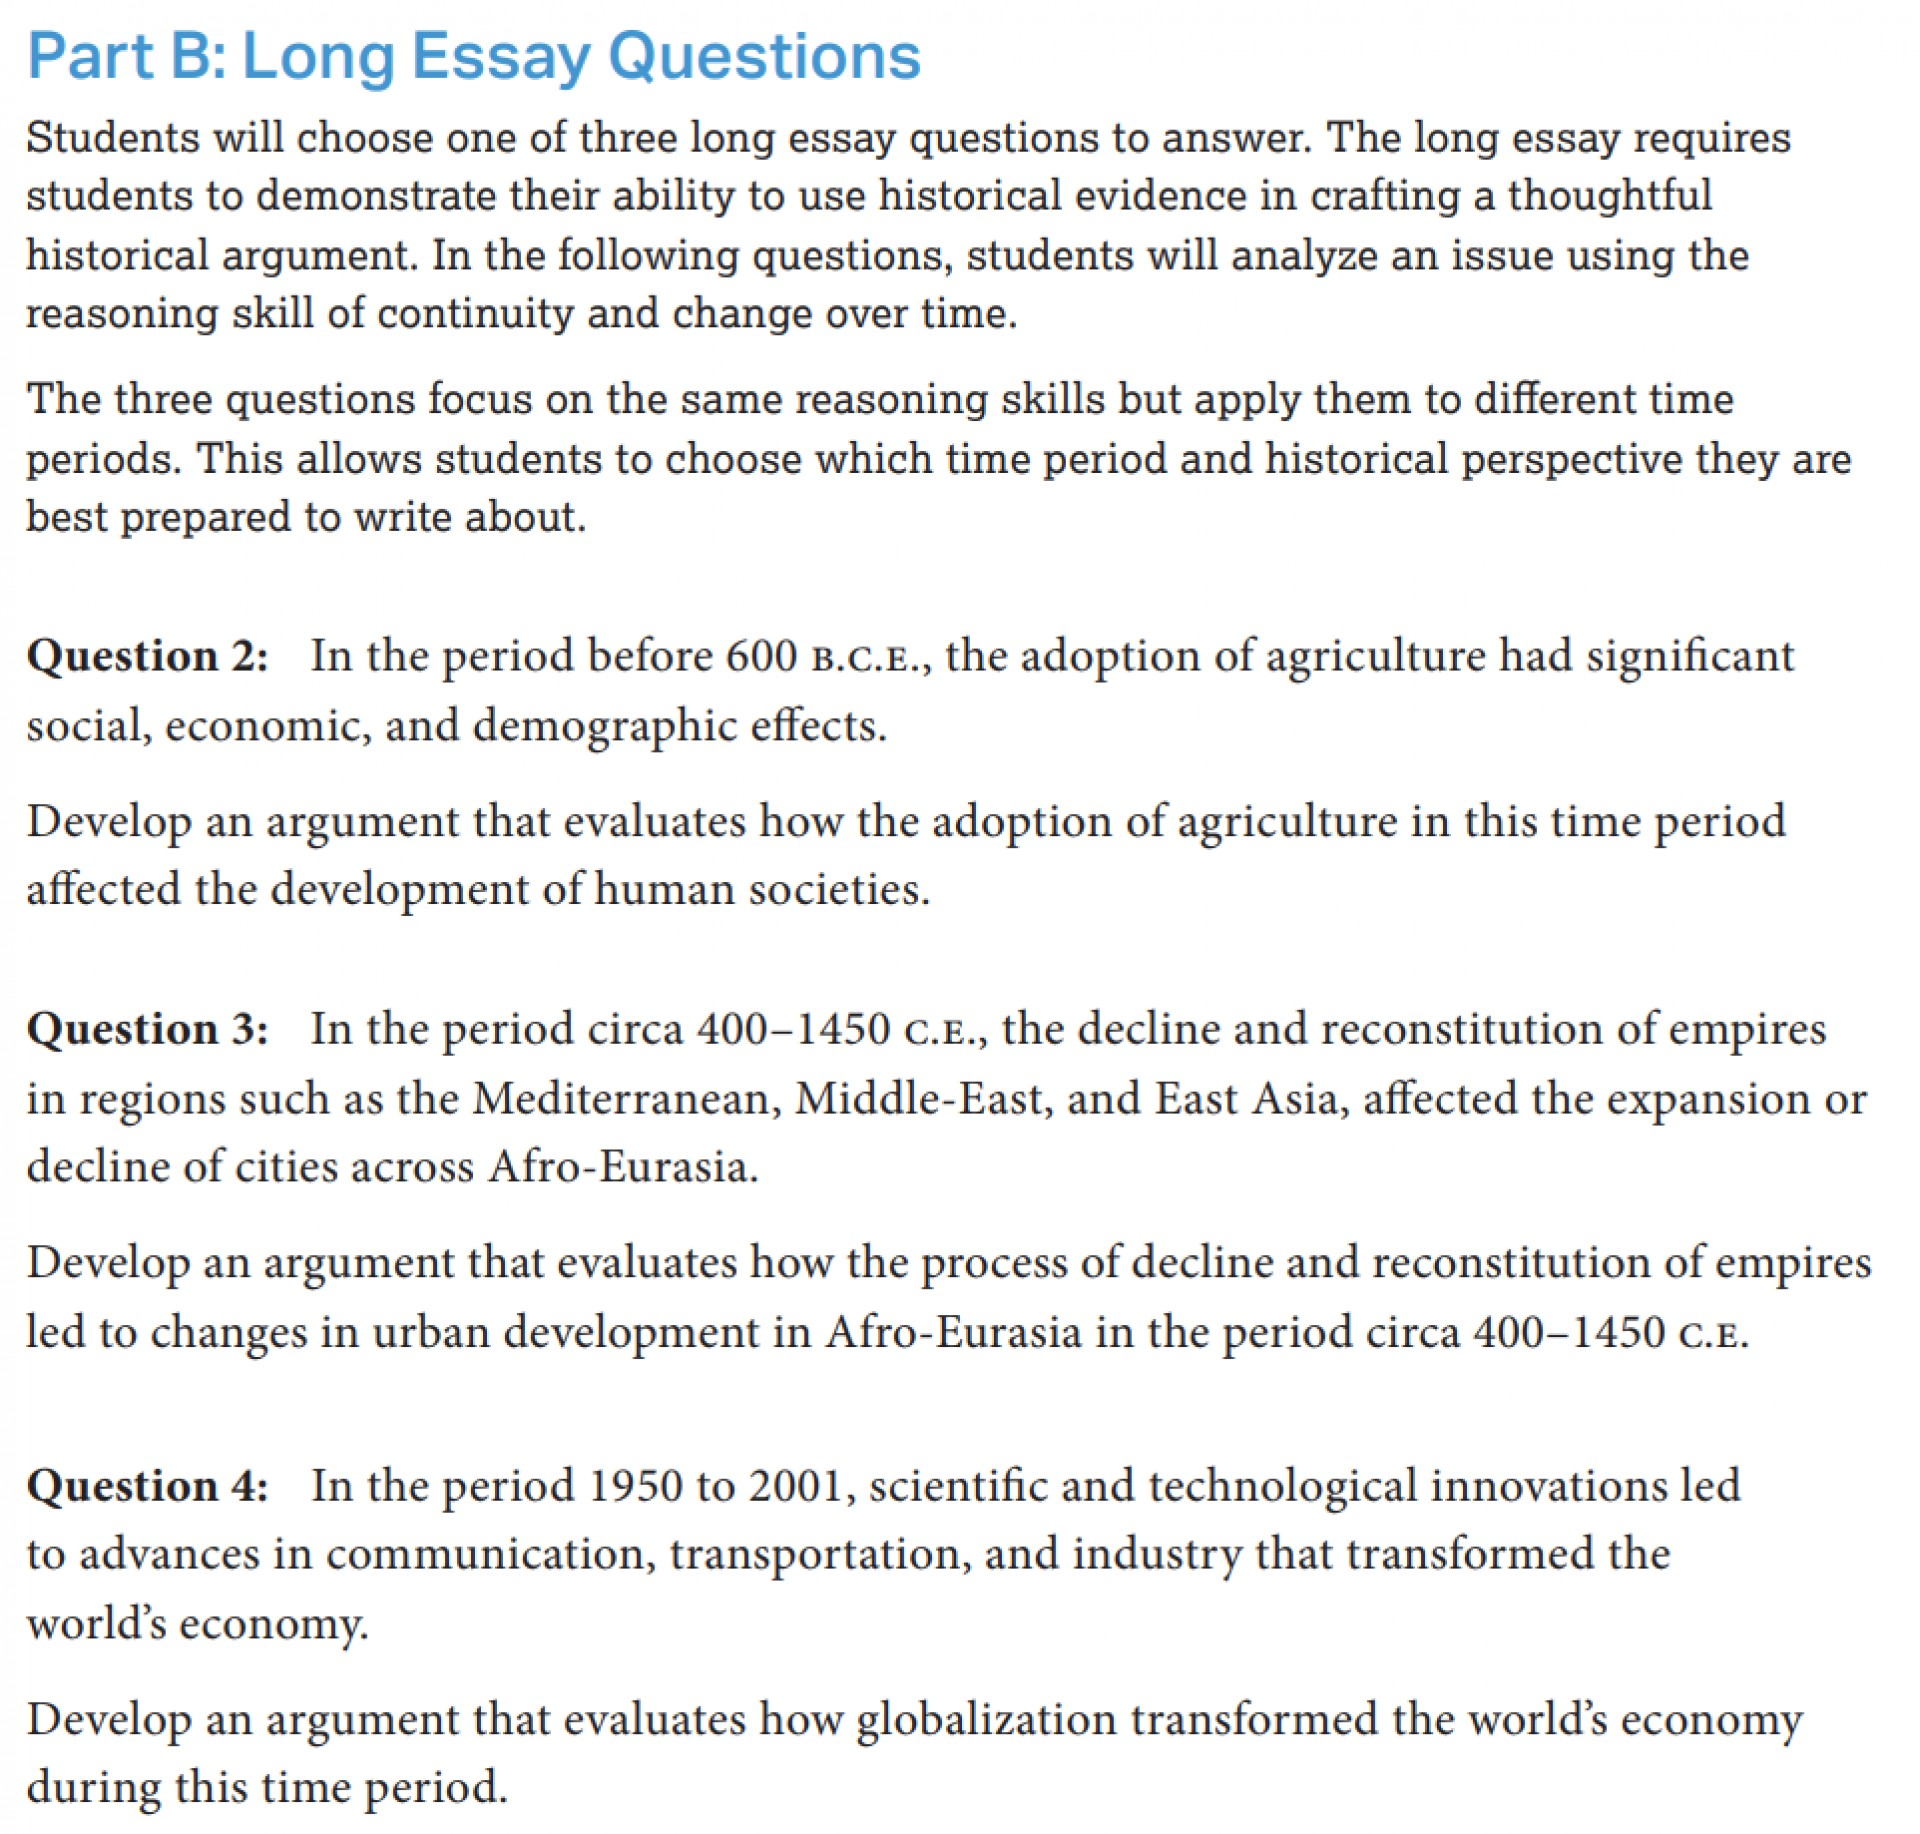 008 How Long Is An Essay Question Example Screenshot2bfrom2b2018 Wondrous What A Short Does Answer Have To Be Should 1920